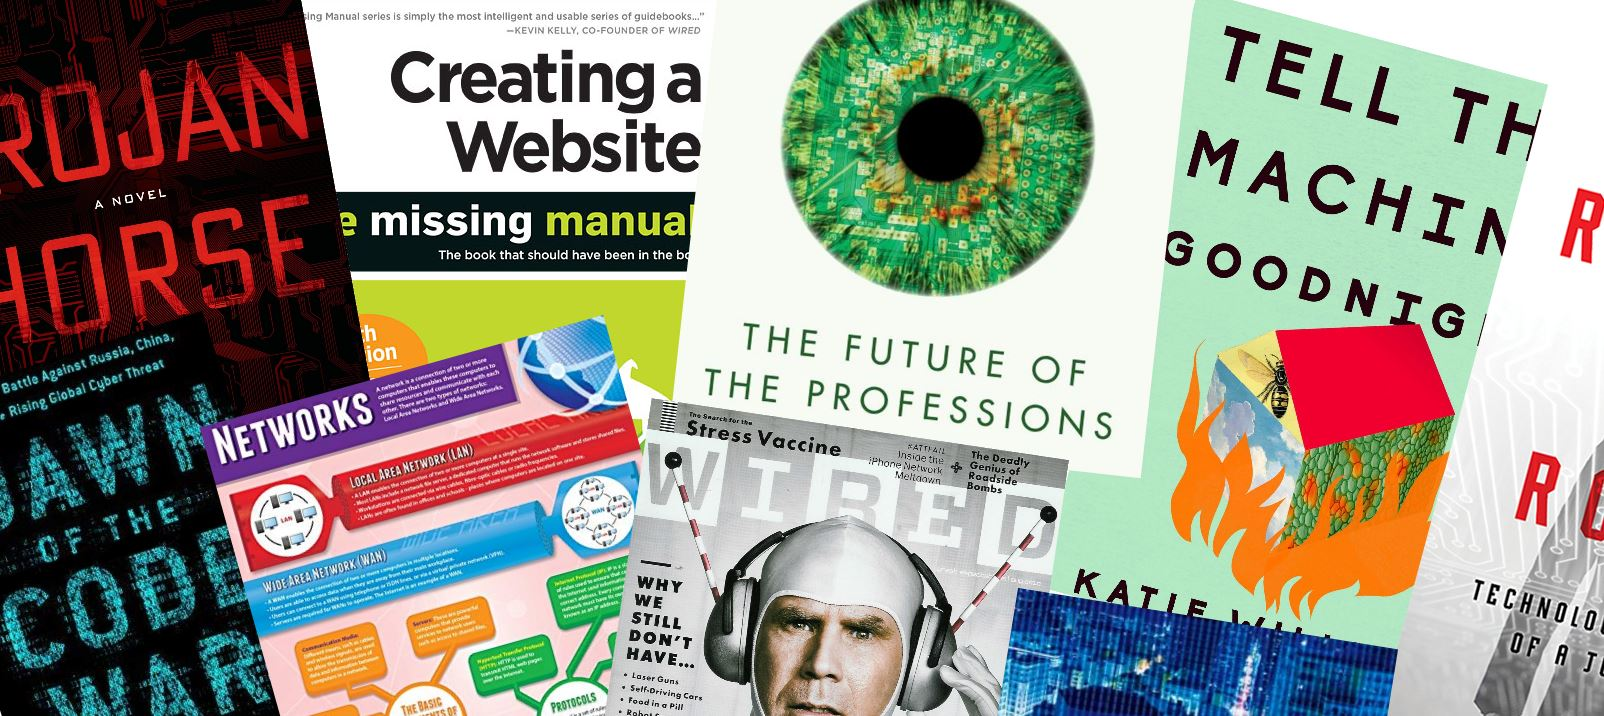 ITGS Resources: Books, films, and more for 2019-2020